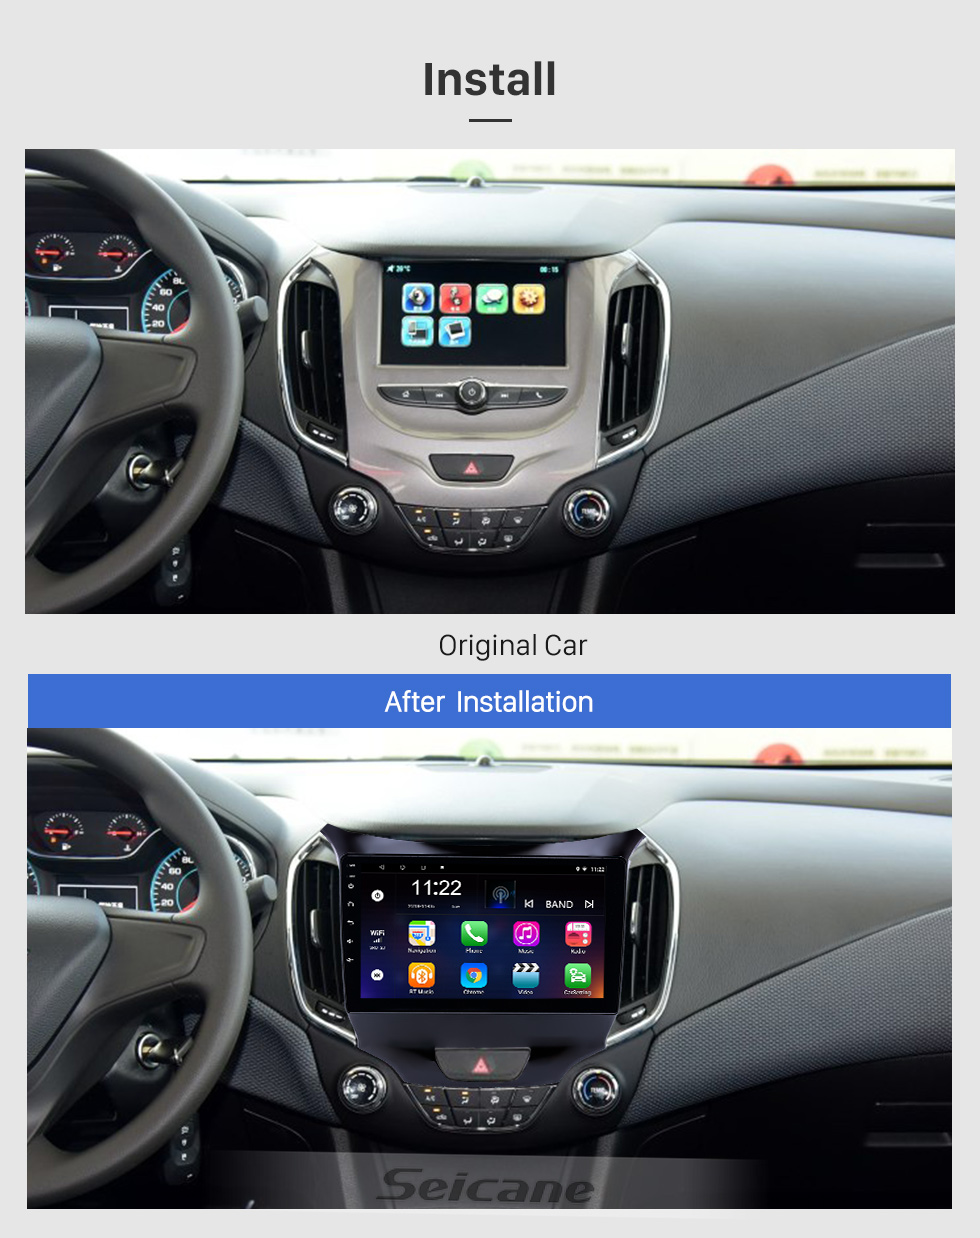 Seicane 2015-2018 chevy Chevrolet Cruze Android 8.1 HD Touchscreen 9 inch Head Unit Bluetooth GPS Navigation Radio with AUX support OBD2 SWC Carplay